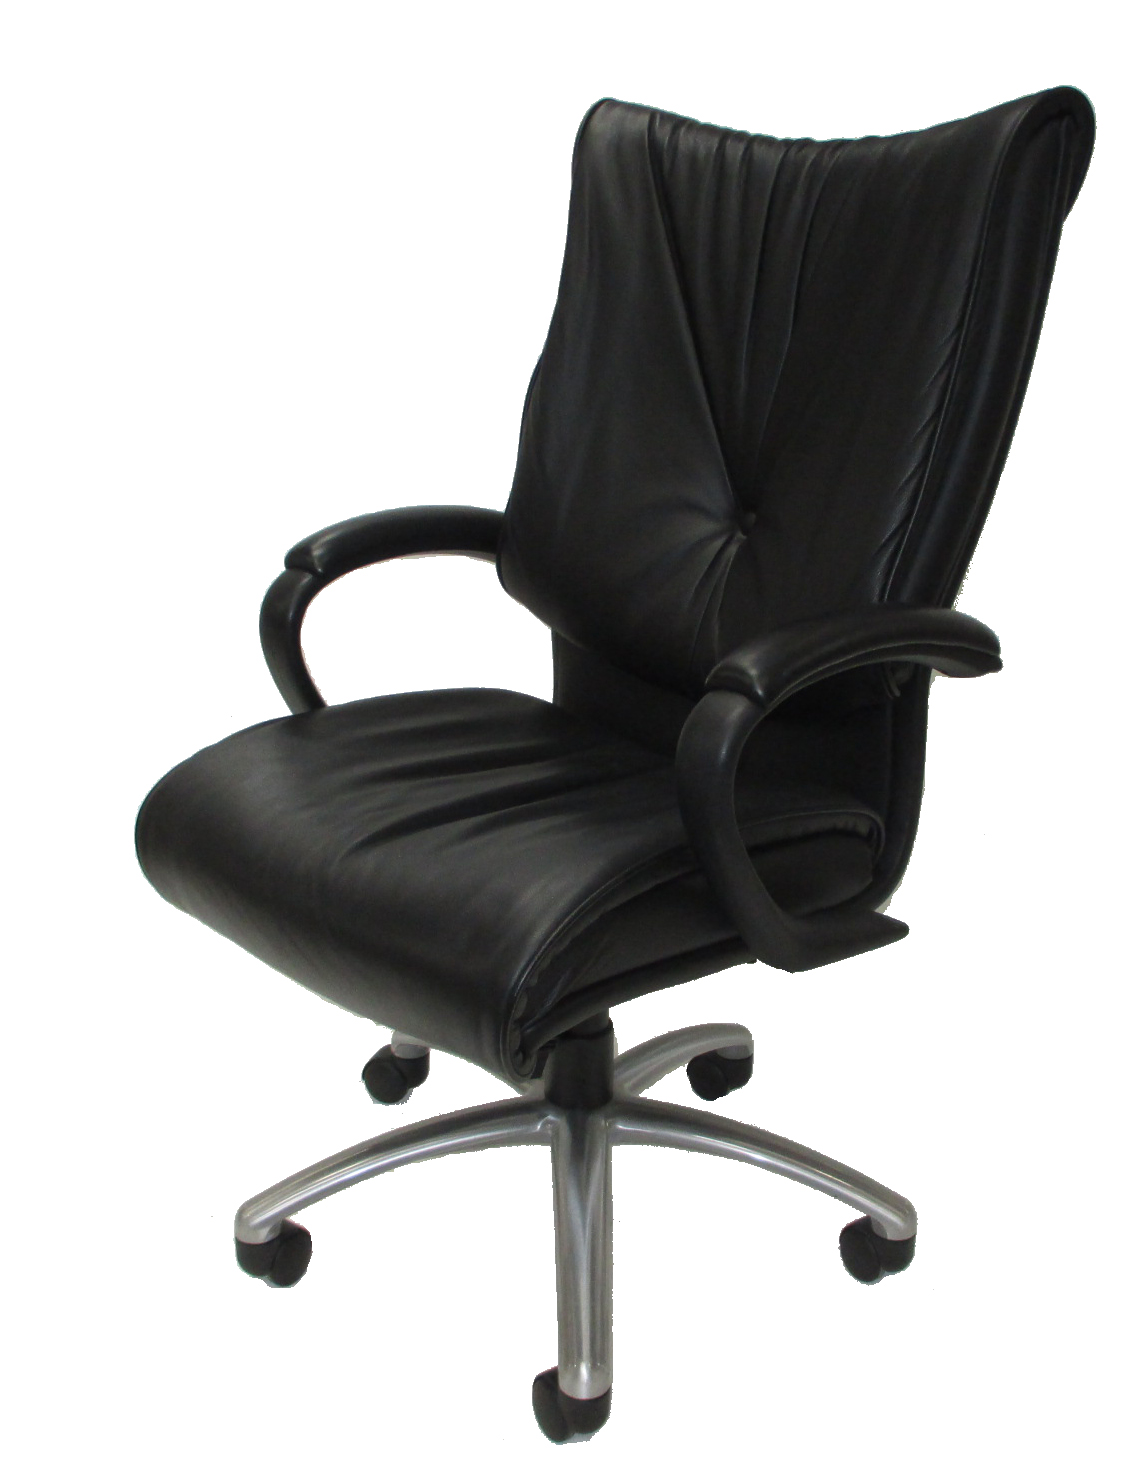 Sit On It Chairs Used Office Furniture Sit On It Glove Task Chair With